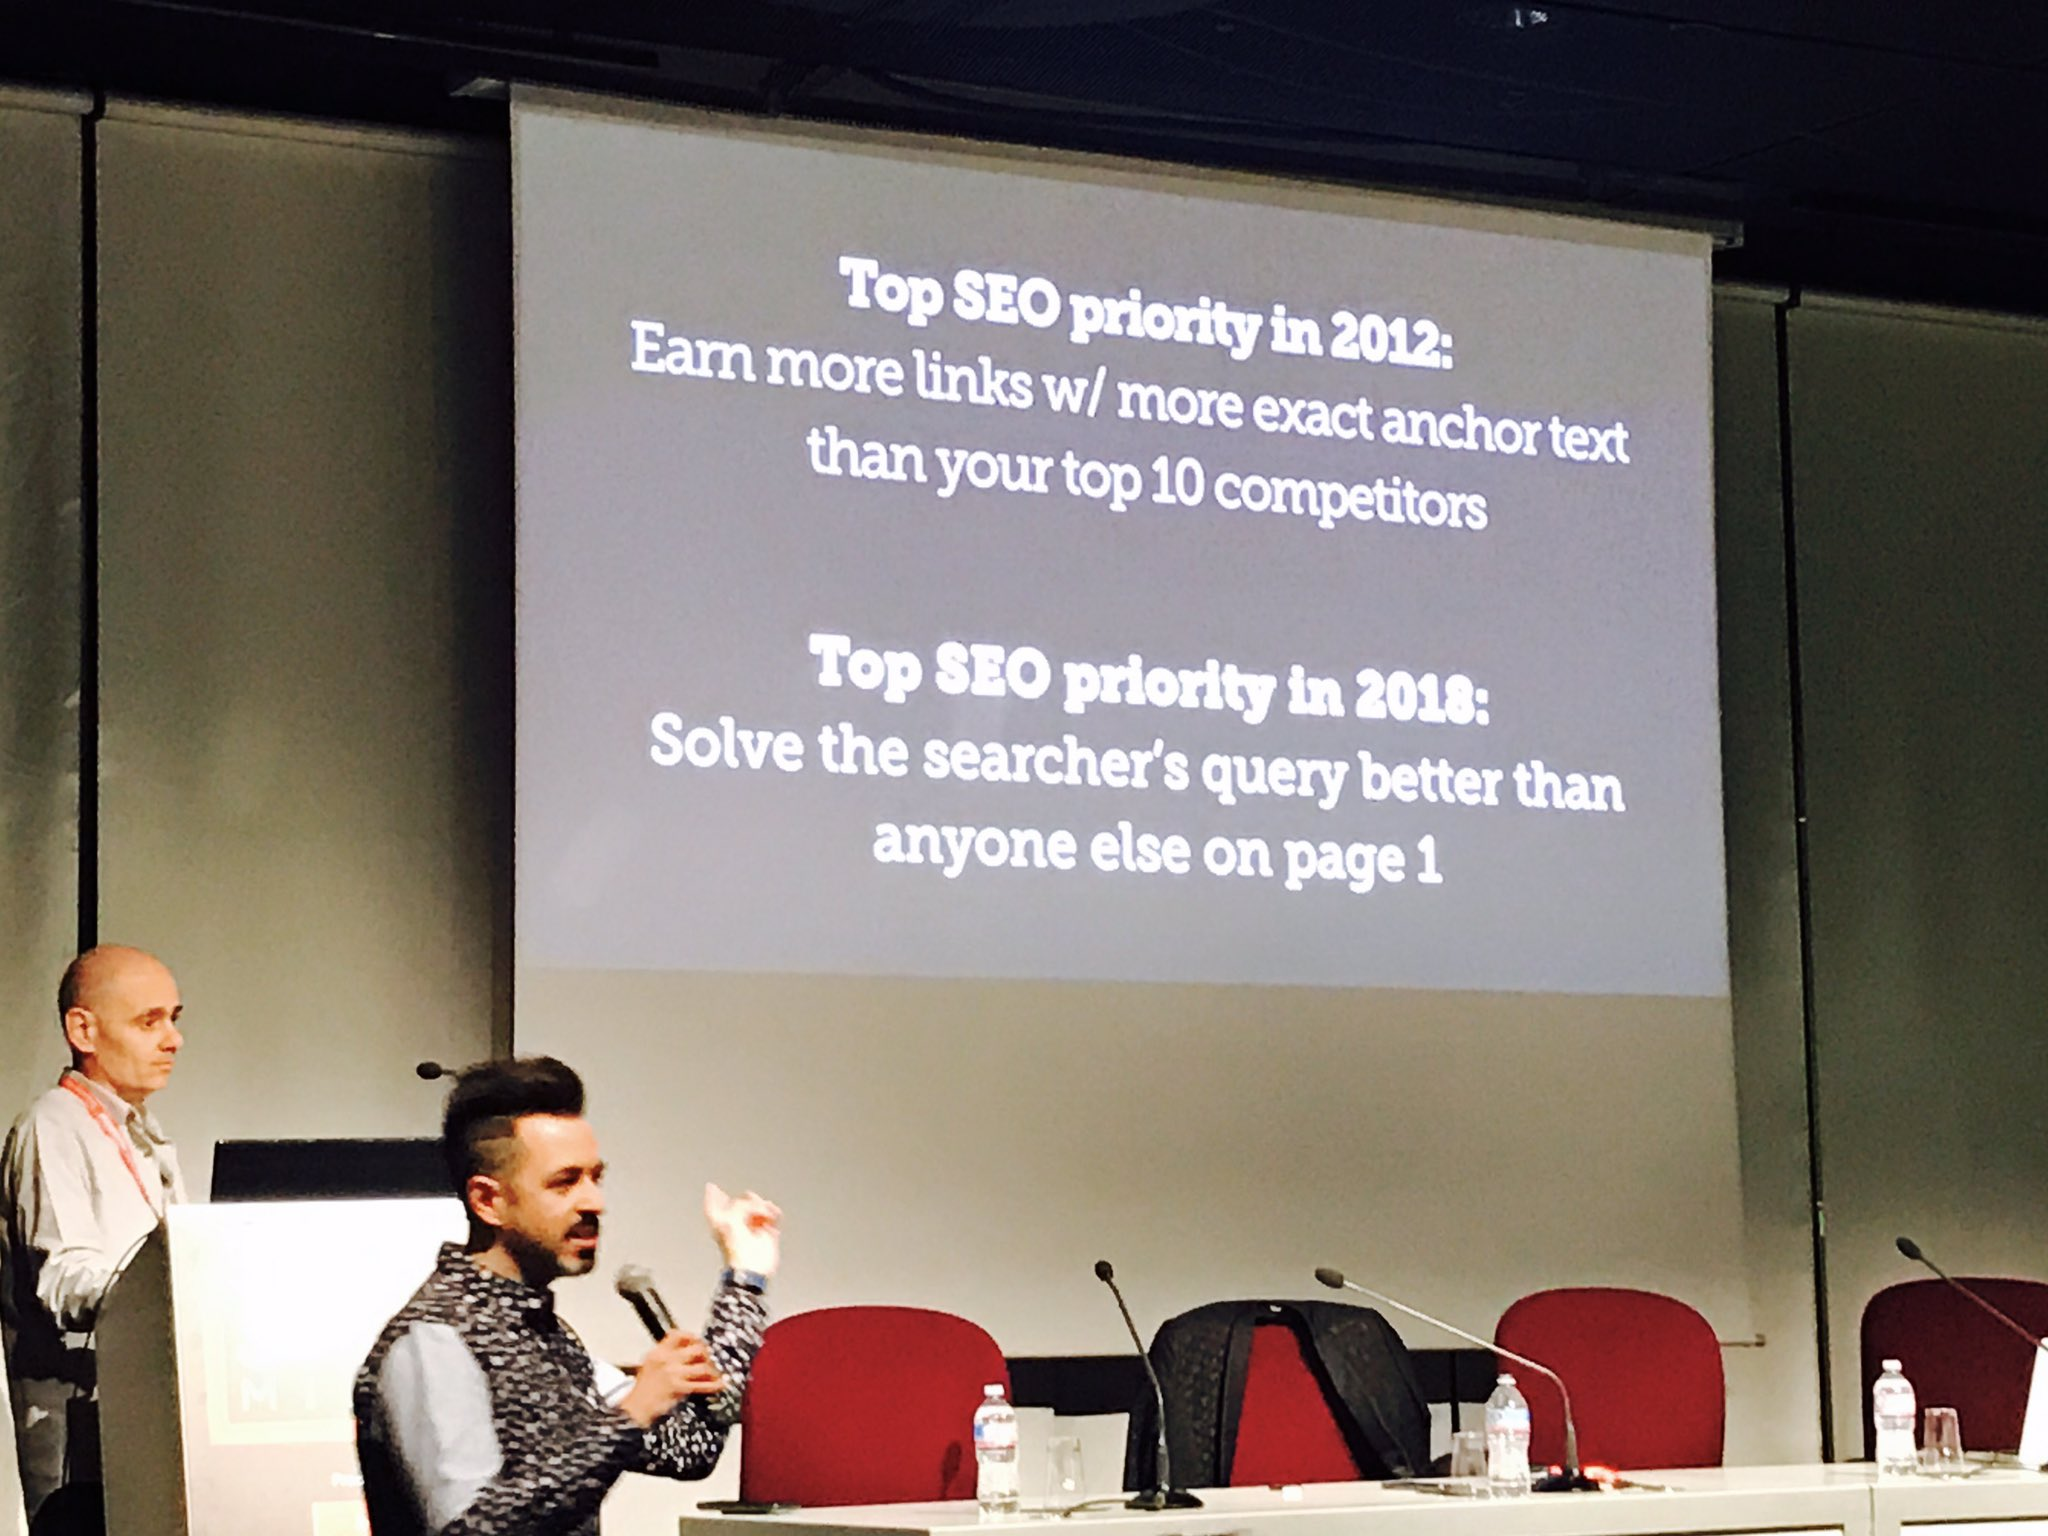 Top SEO priority in 2018 = solve the searchers query better than anyone else! @randfish #Smxlmilan https://t.co/A3nmnVjm0H